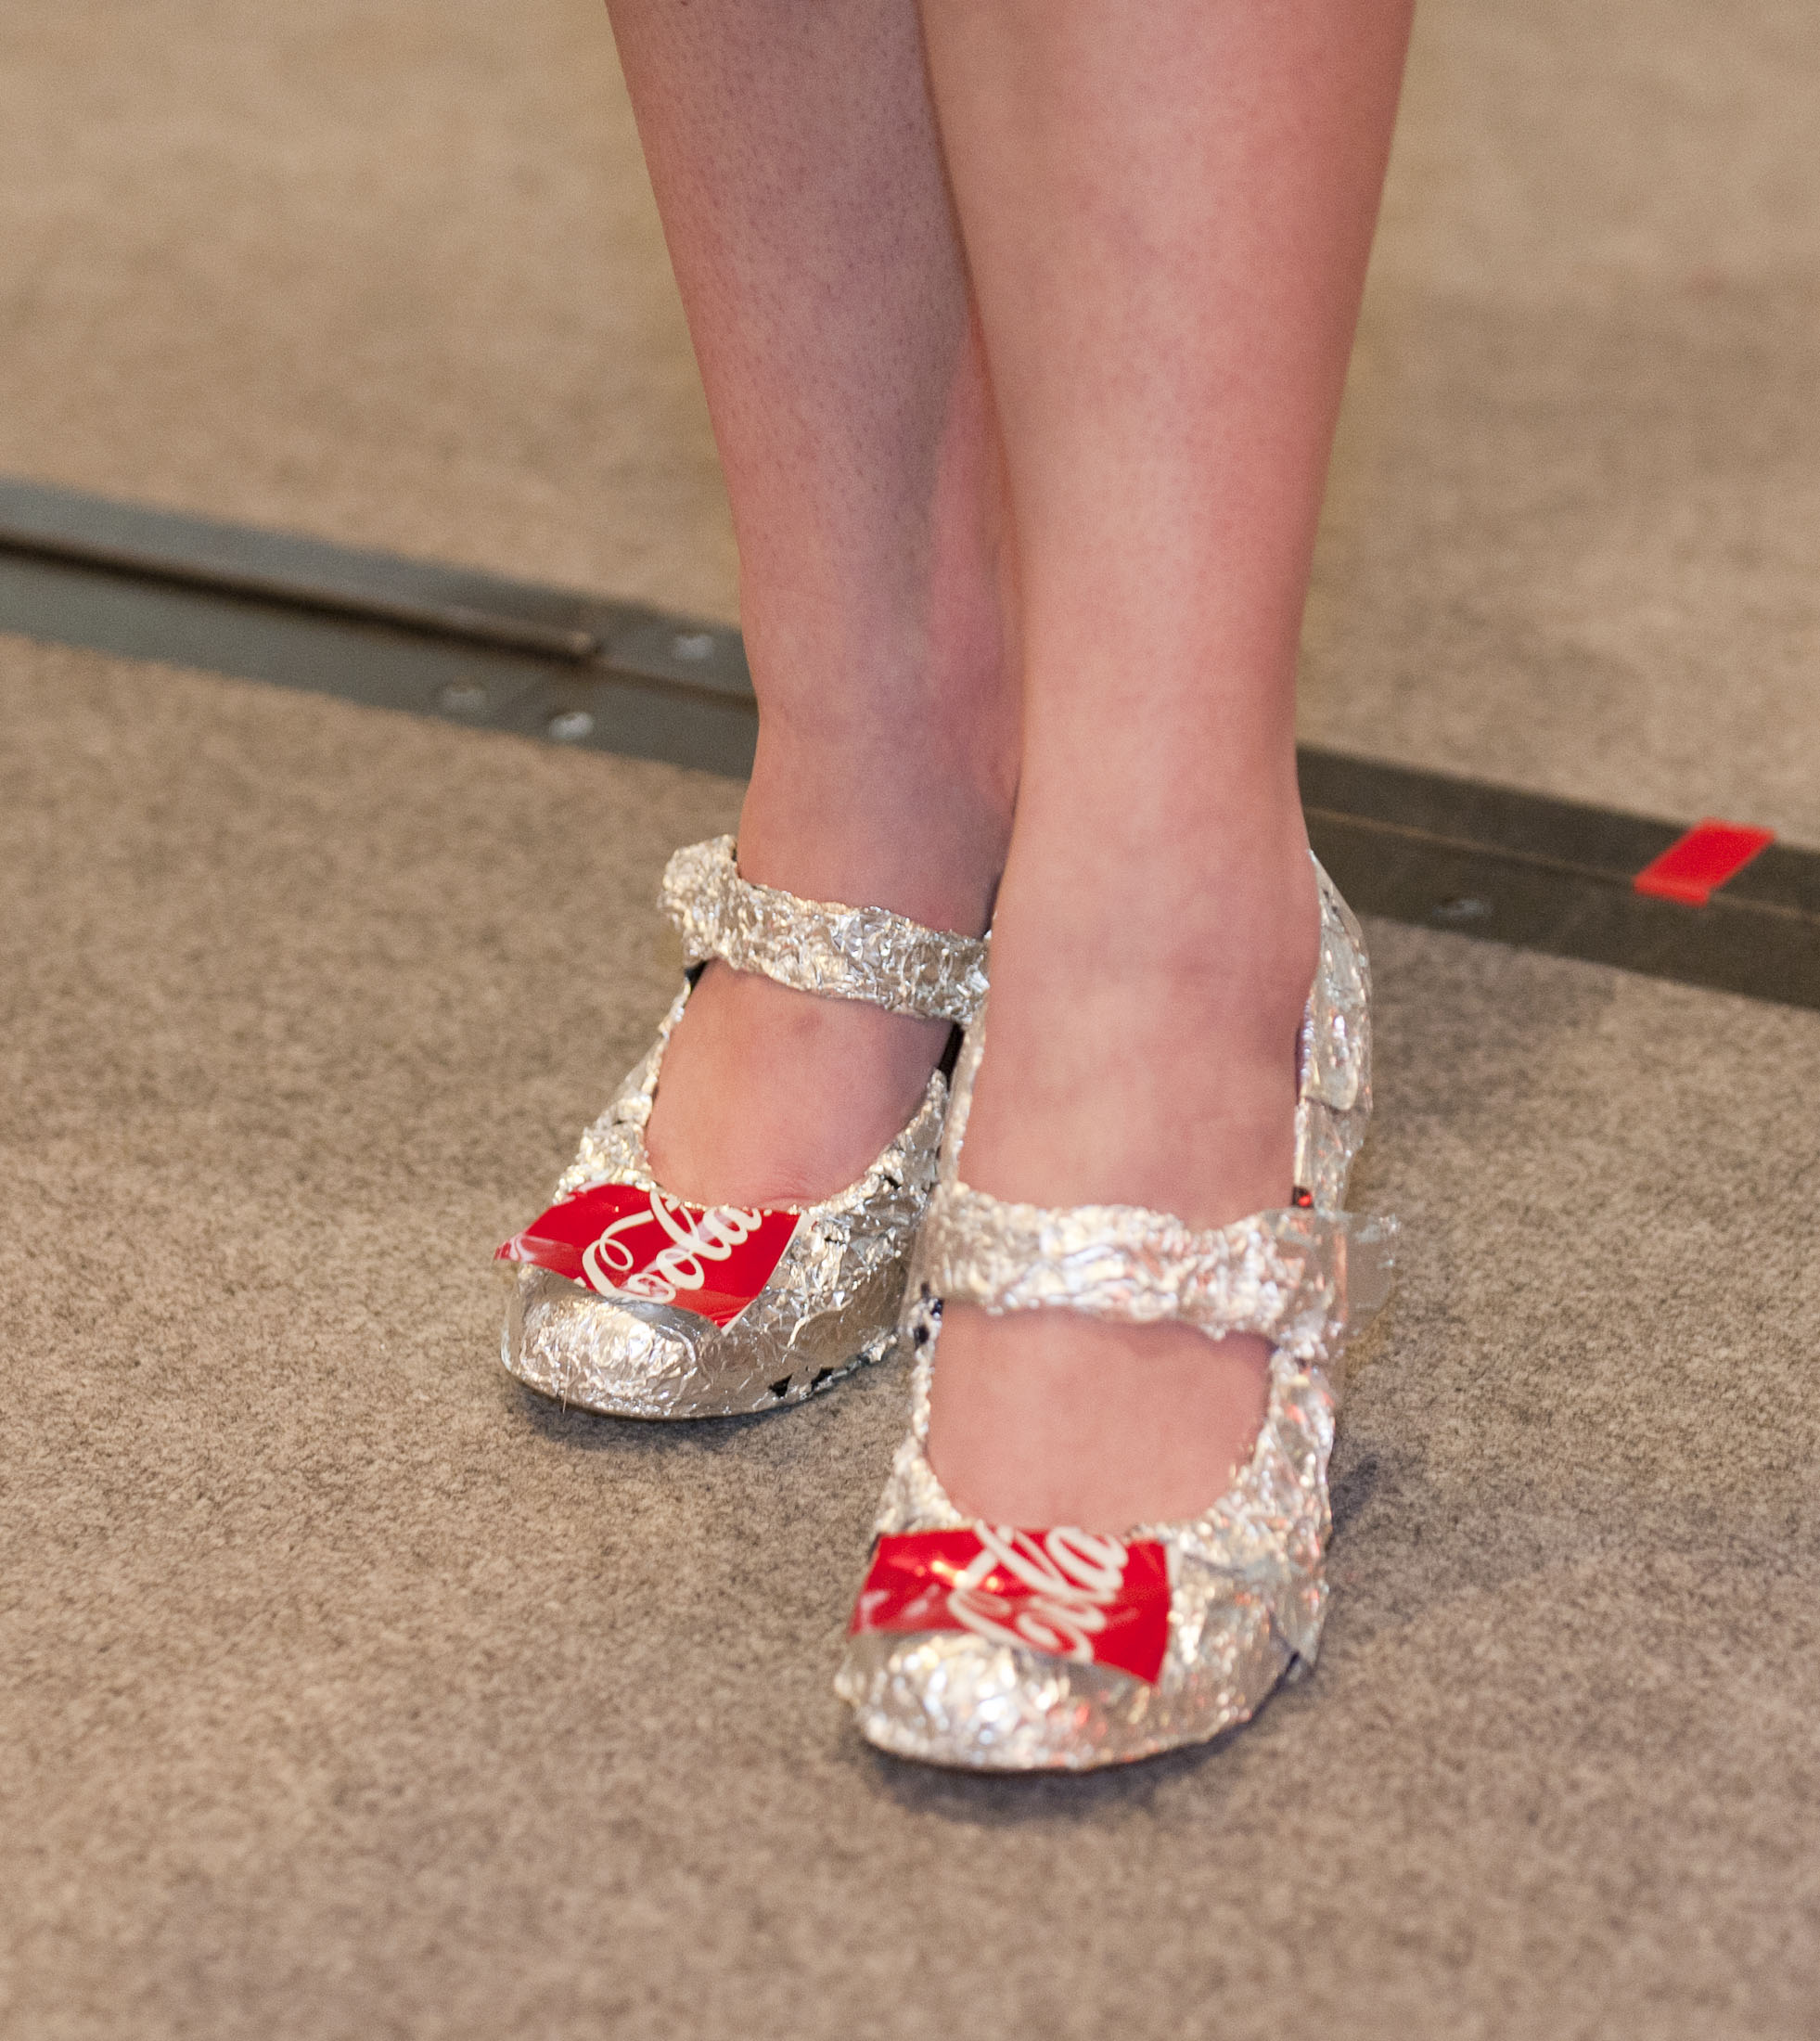 Diana Mansour's design shines with Coca-Cola can-inspired shoes.